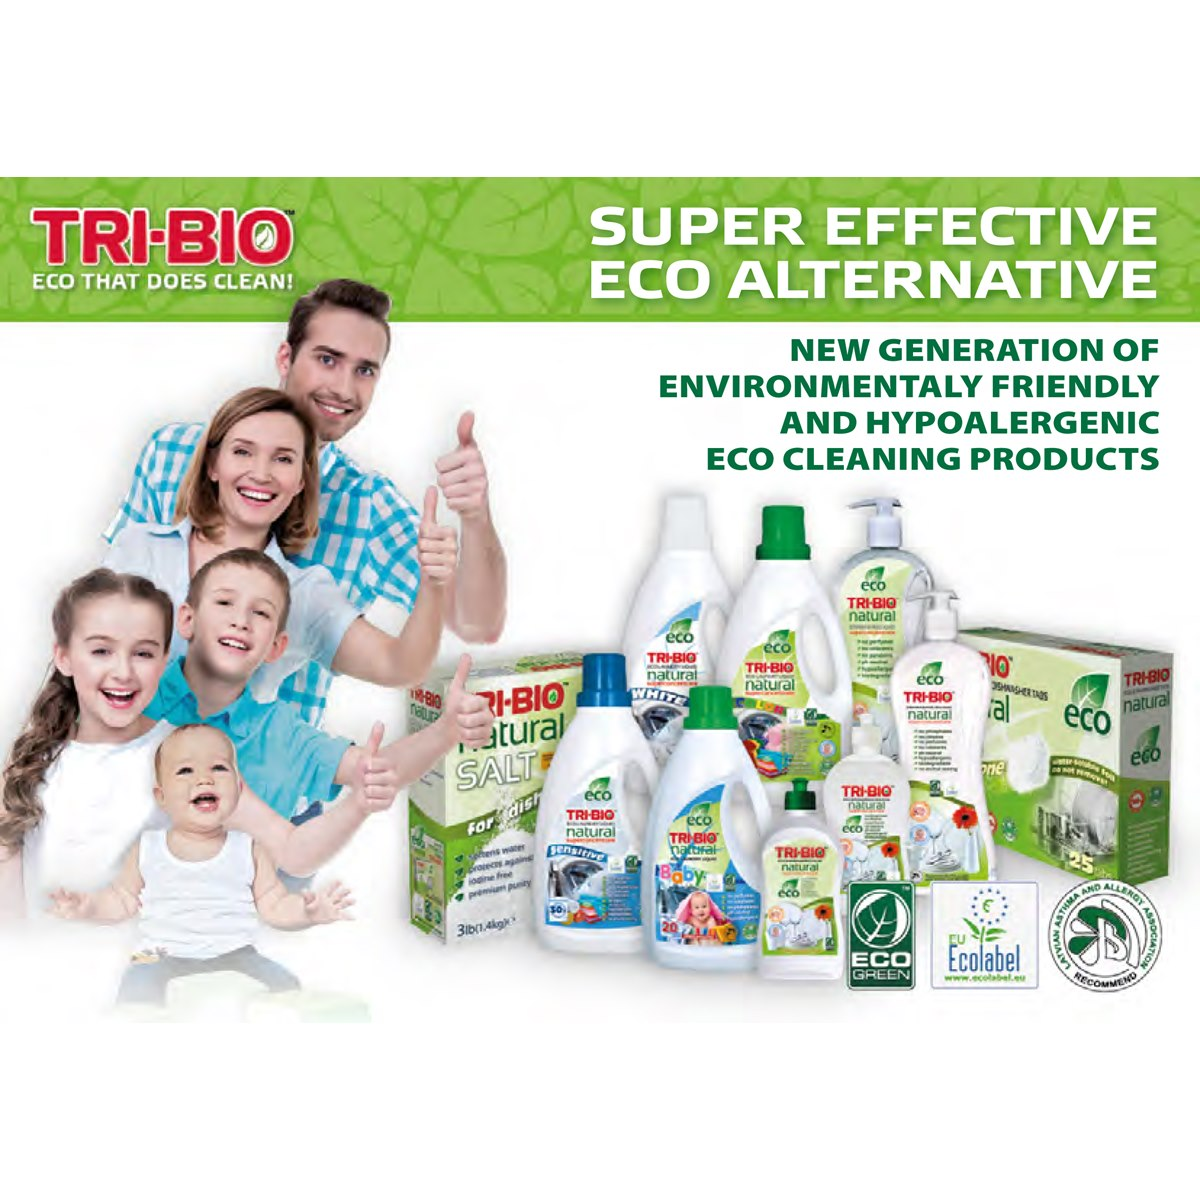 Where to Buy Tri Bio Products